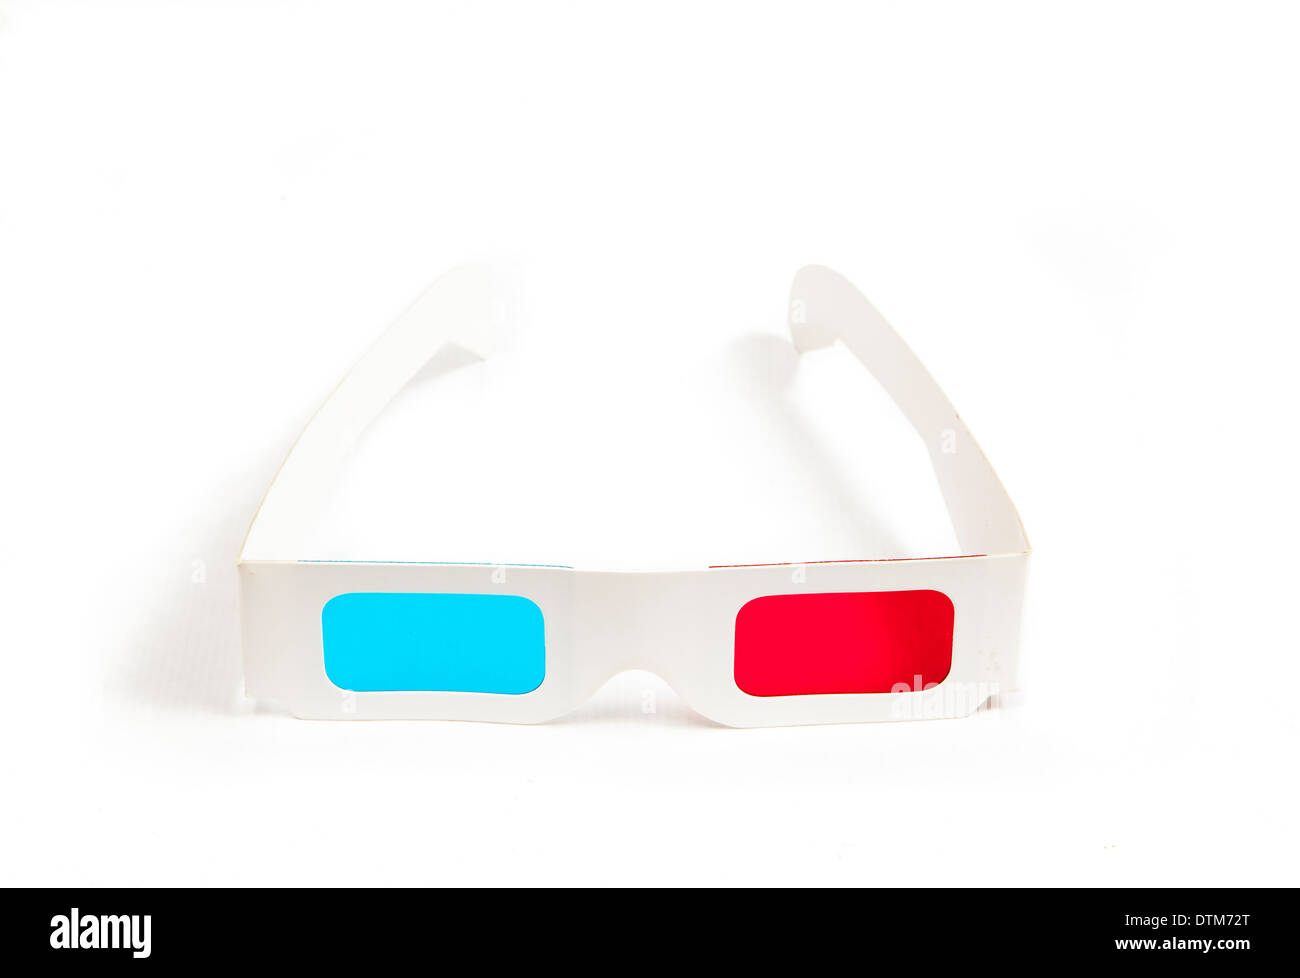 a pair of carton glasses to see three-dimensional effect films. - Stock Image